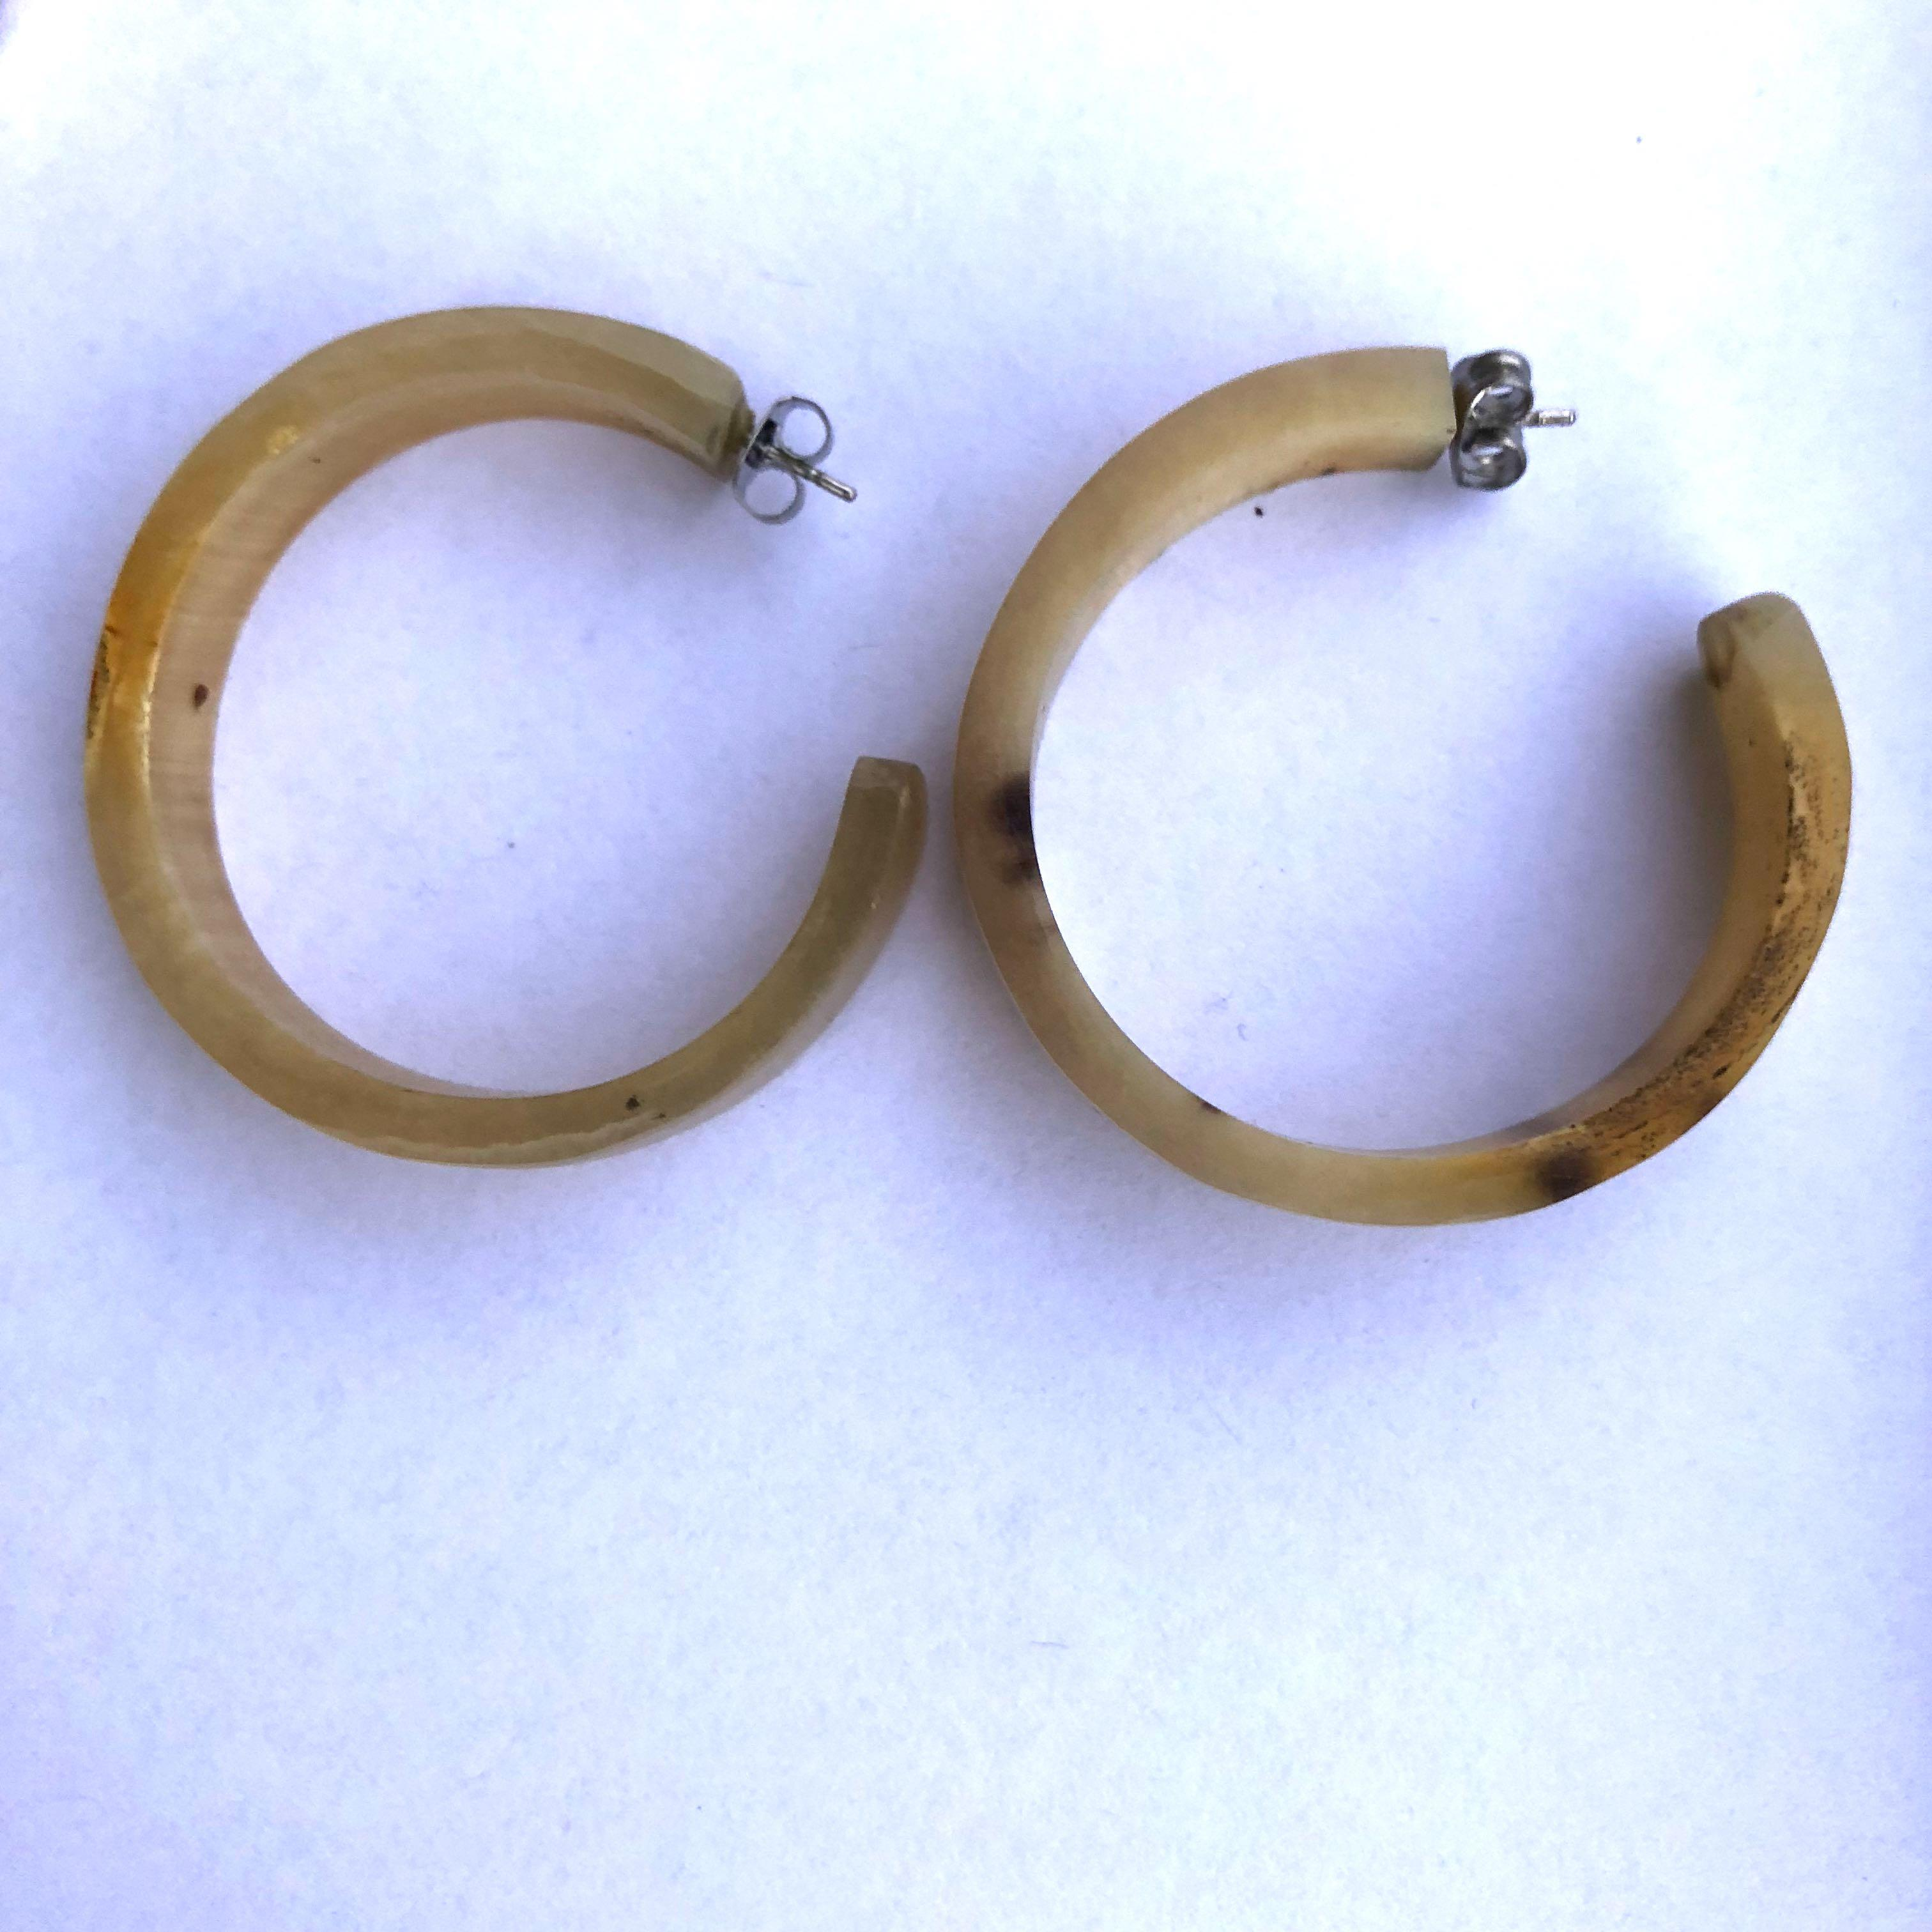 Earrings - ( price includes free standard postage within Australia )